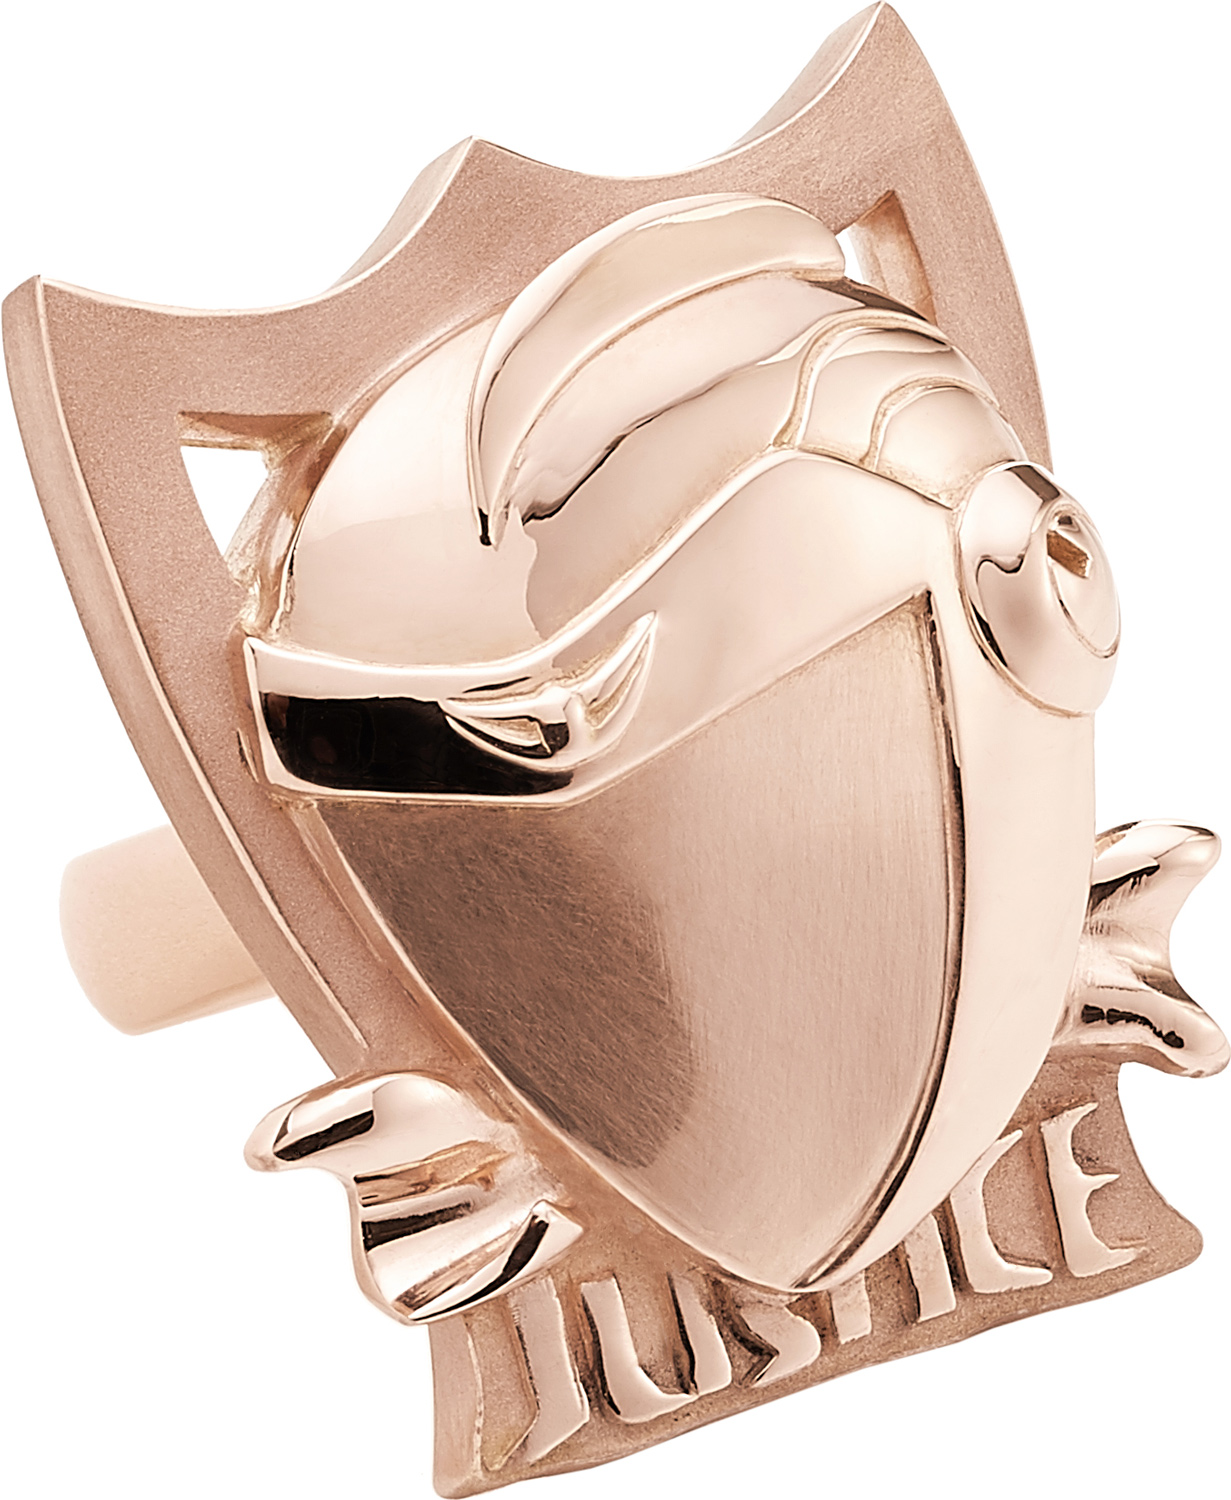 ANDY HOPE 1930 for CADA<br><br>JUSTICE Ring